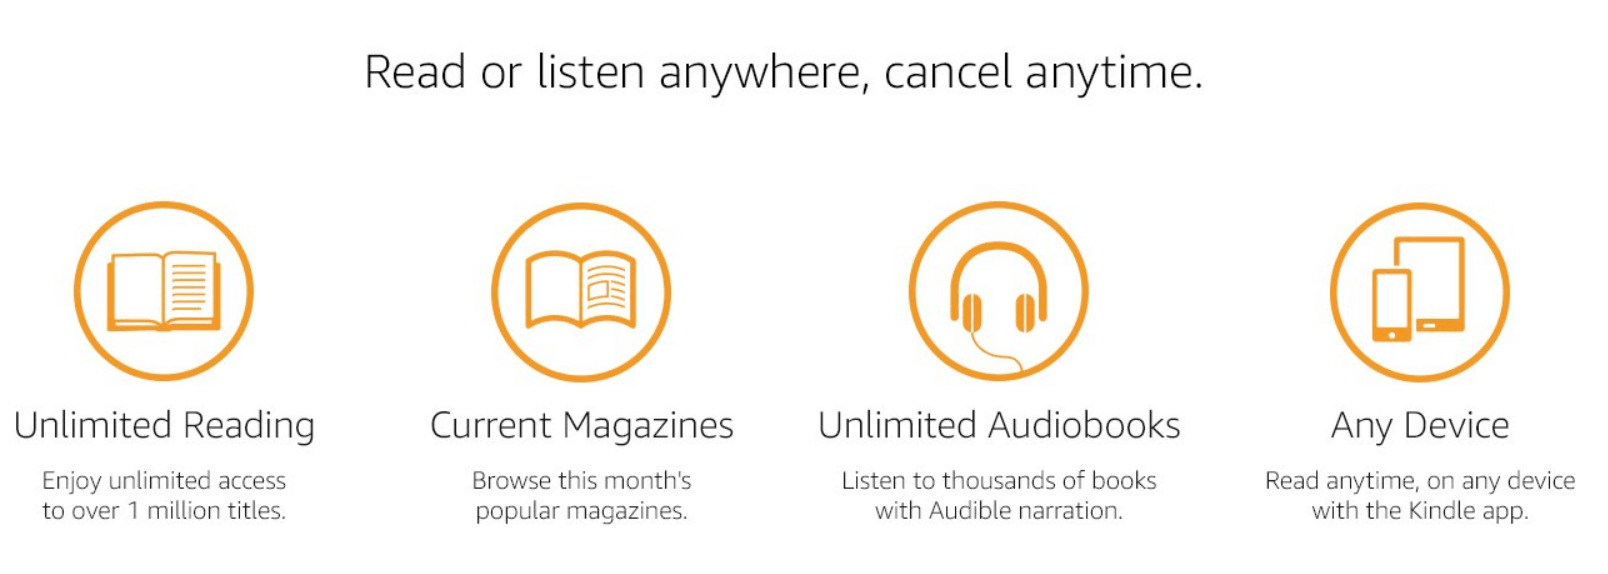 Kindle Unlimited deal with unlimited magazines and audiobooks.